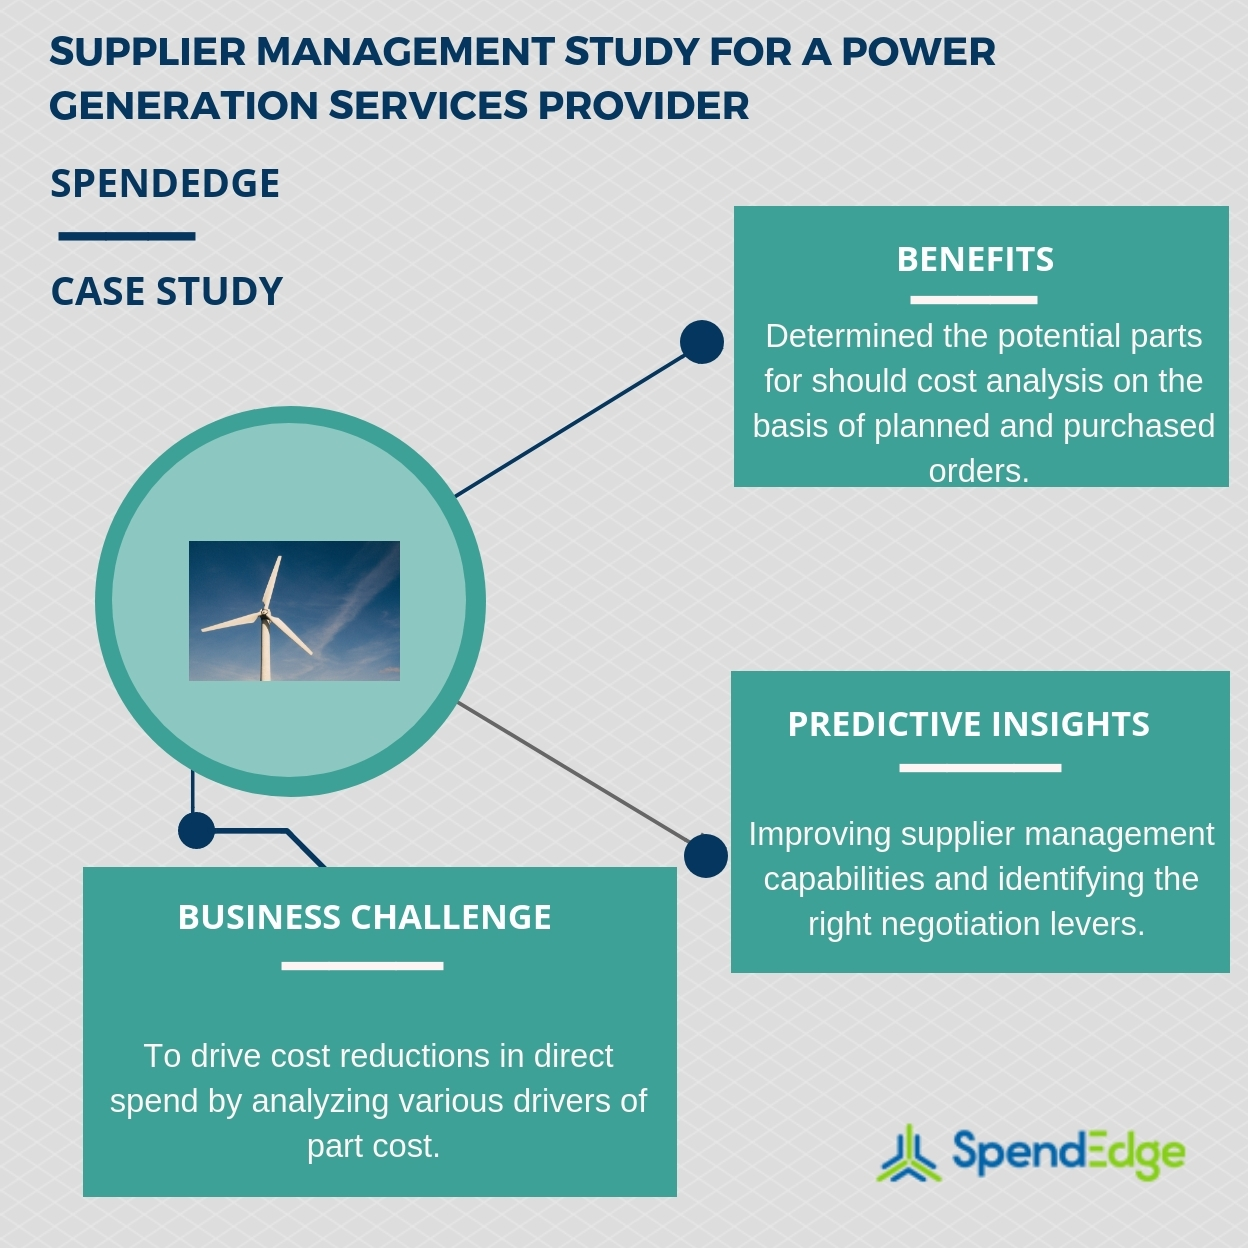 Want to Know How an Energy Company Reduced Part Costs by Deploying a